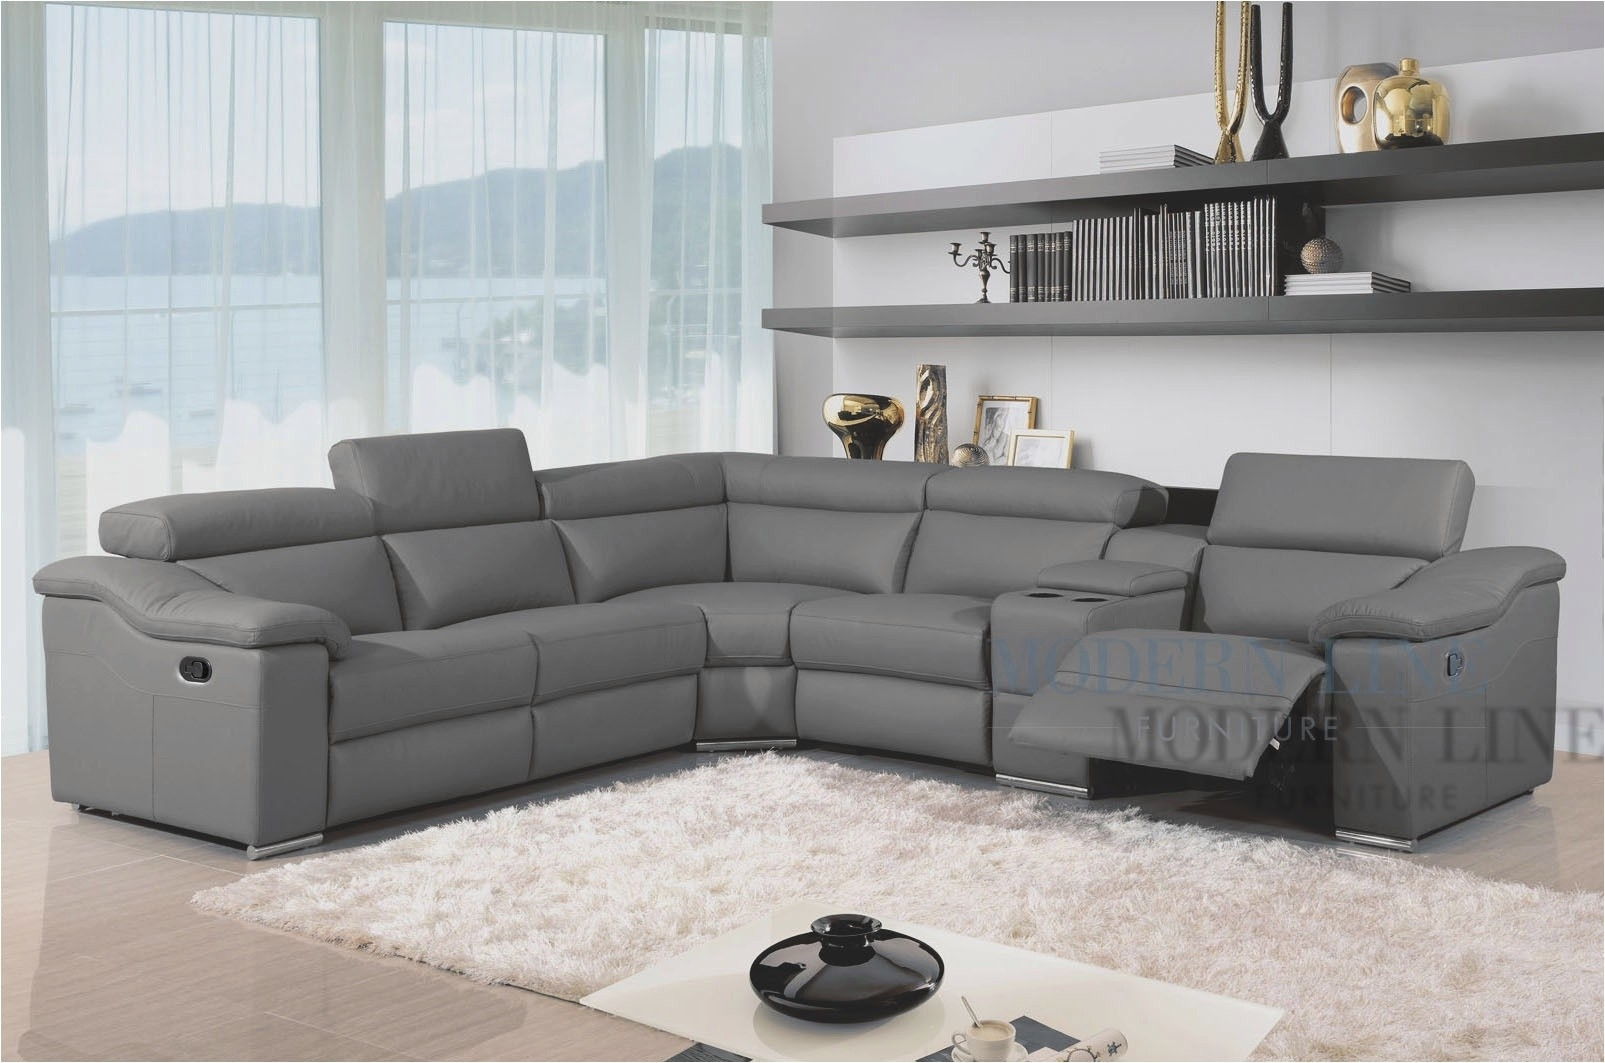 Grey Leather Reclining Sectional Clyde 3 Piece Power W Pwr Hdrst Regarding Clyde Grey Leather 3 Piece Power Reclining Sectionals With Pwr Hdrst & Usb (View 12 of 25)